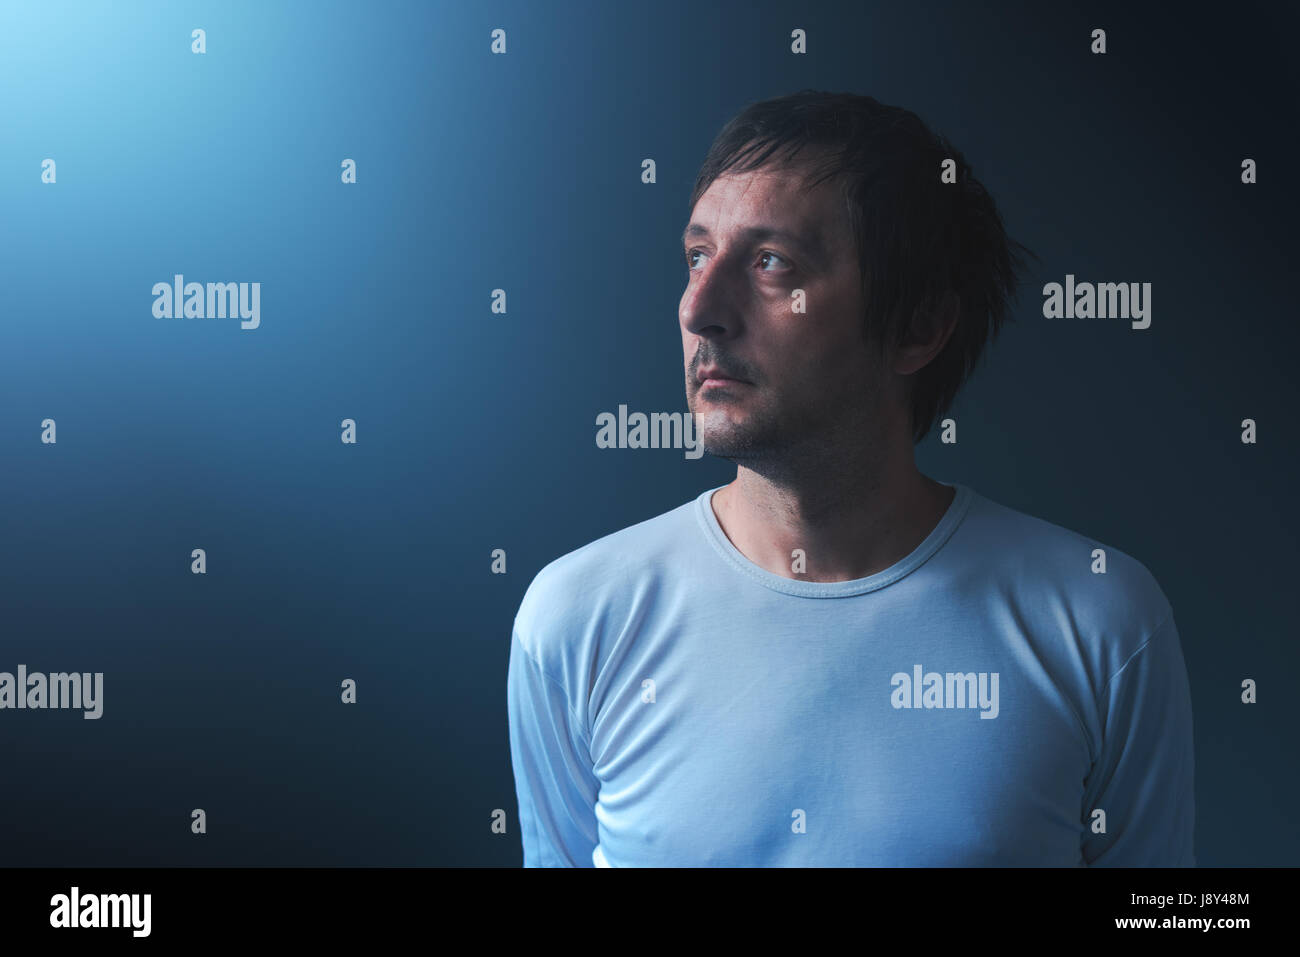 Hopeless man looking up to the light, sad and disappointed adult male person in hope concept - Stock Image